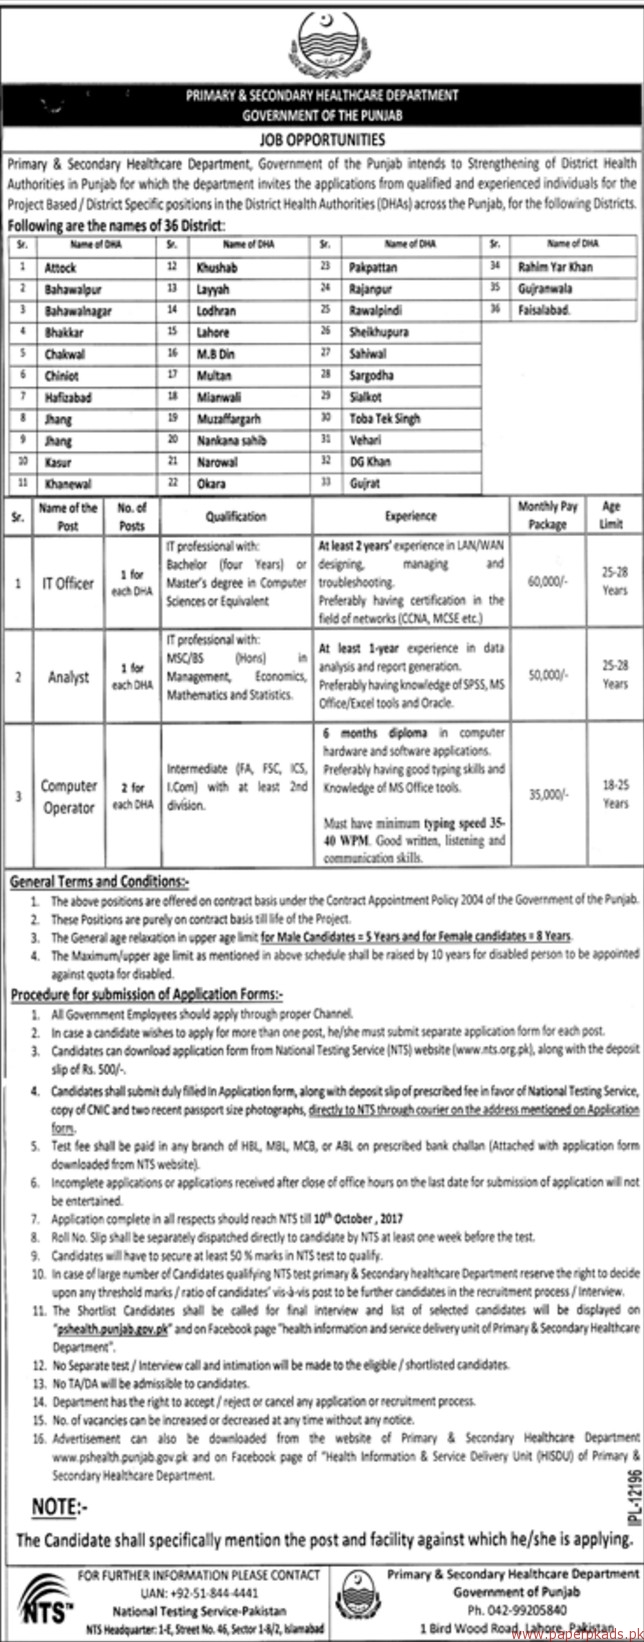 P&S Healthcare Department Punjab Jobs 2017 NTS Application Form for IT Officer, Analyst & Computer Operator